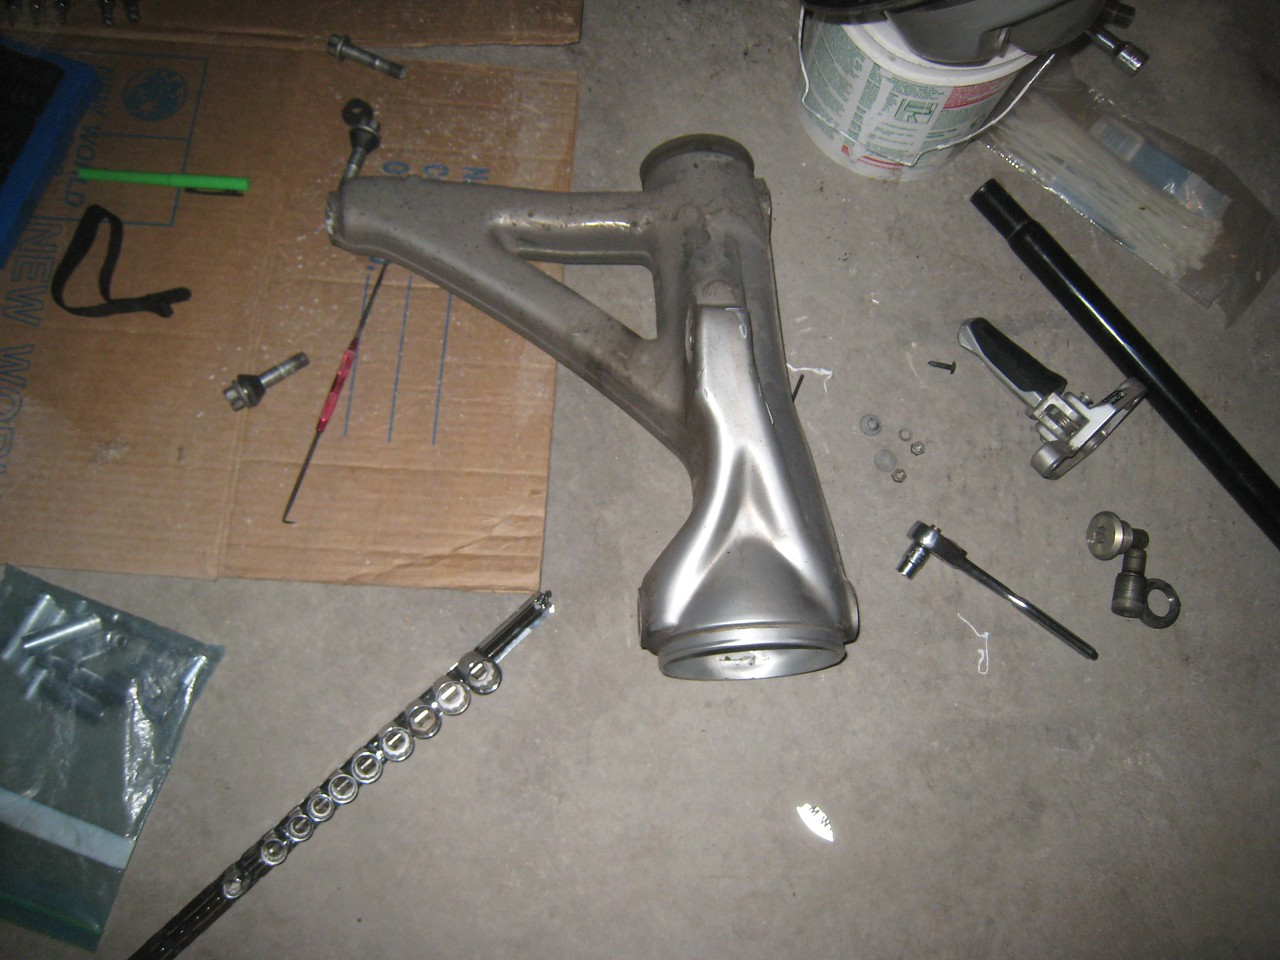 Finally, got the swing arm out.  Wait a pain in the ass.  I almost rounded off the swing arm pivot pin, breaking a socket in the process.  Thank goodness I was able to get the pivot pin out, otherwise I would really have been in trouble.  A two-foot cheater was needed to break the pin loose.